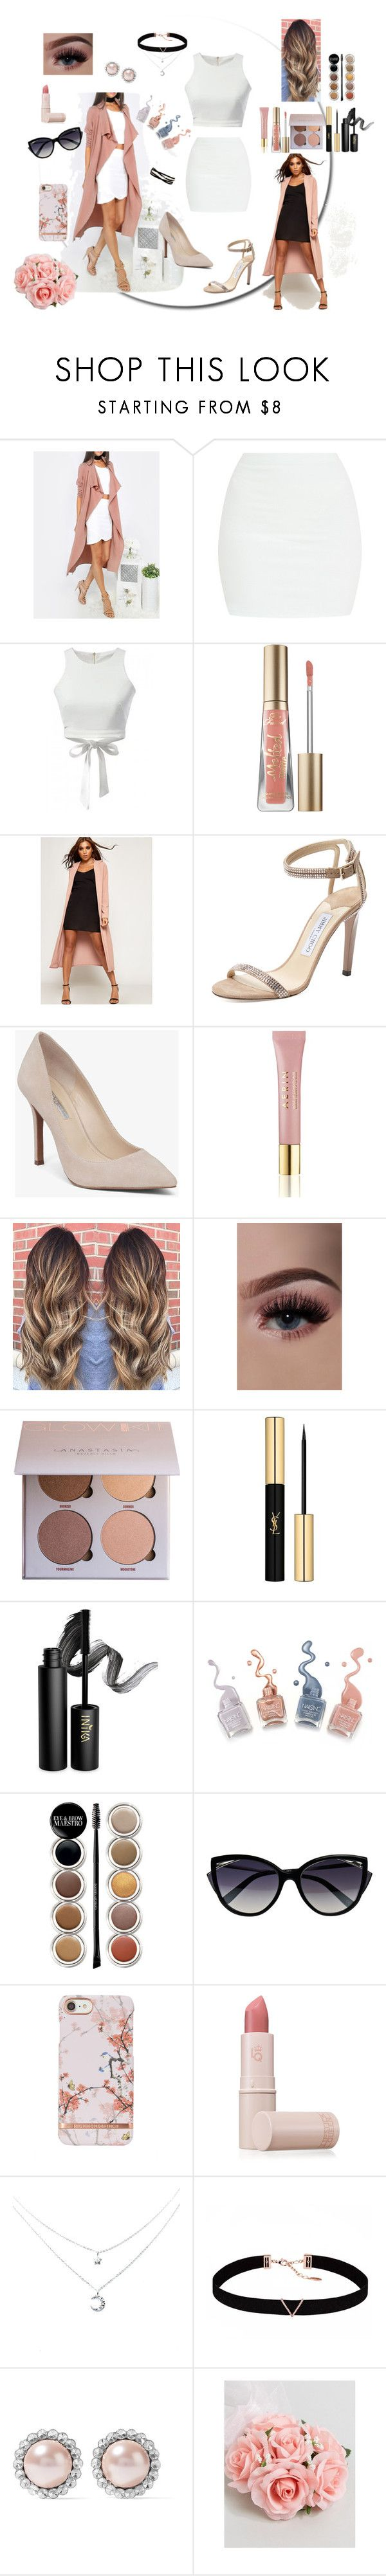 """""""Busy Fashion"""" by morgan2017 ❤ liked on Polyvore featuring Too Faced Cosmetics, WearAll, Jimmy Choo, BCBGeneration, AERIN, Yves Saint Laurent, INIKA, Giorgio Armani, La Perla and Lipstick Queen"""